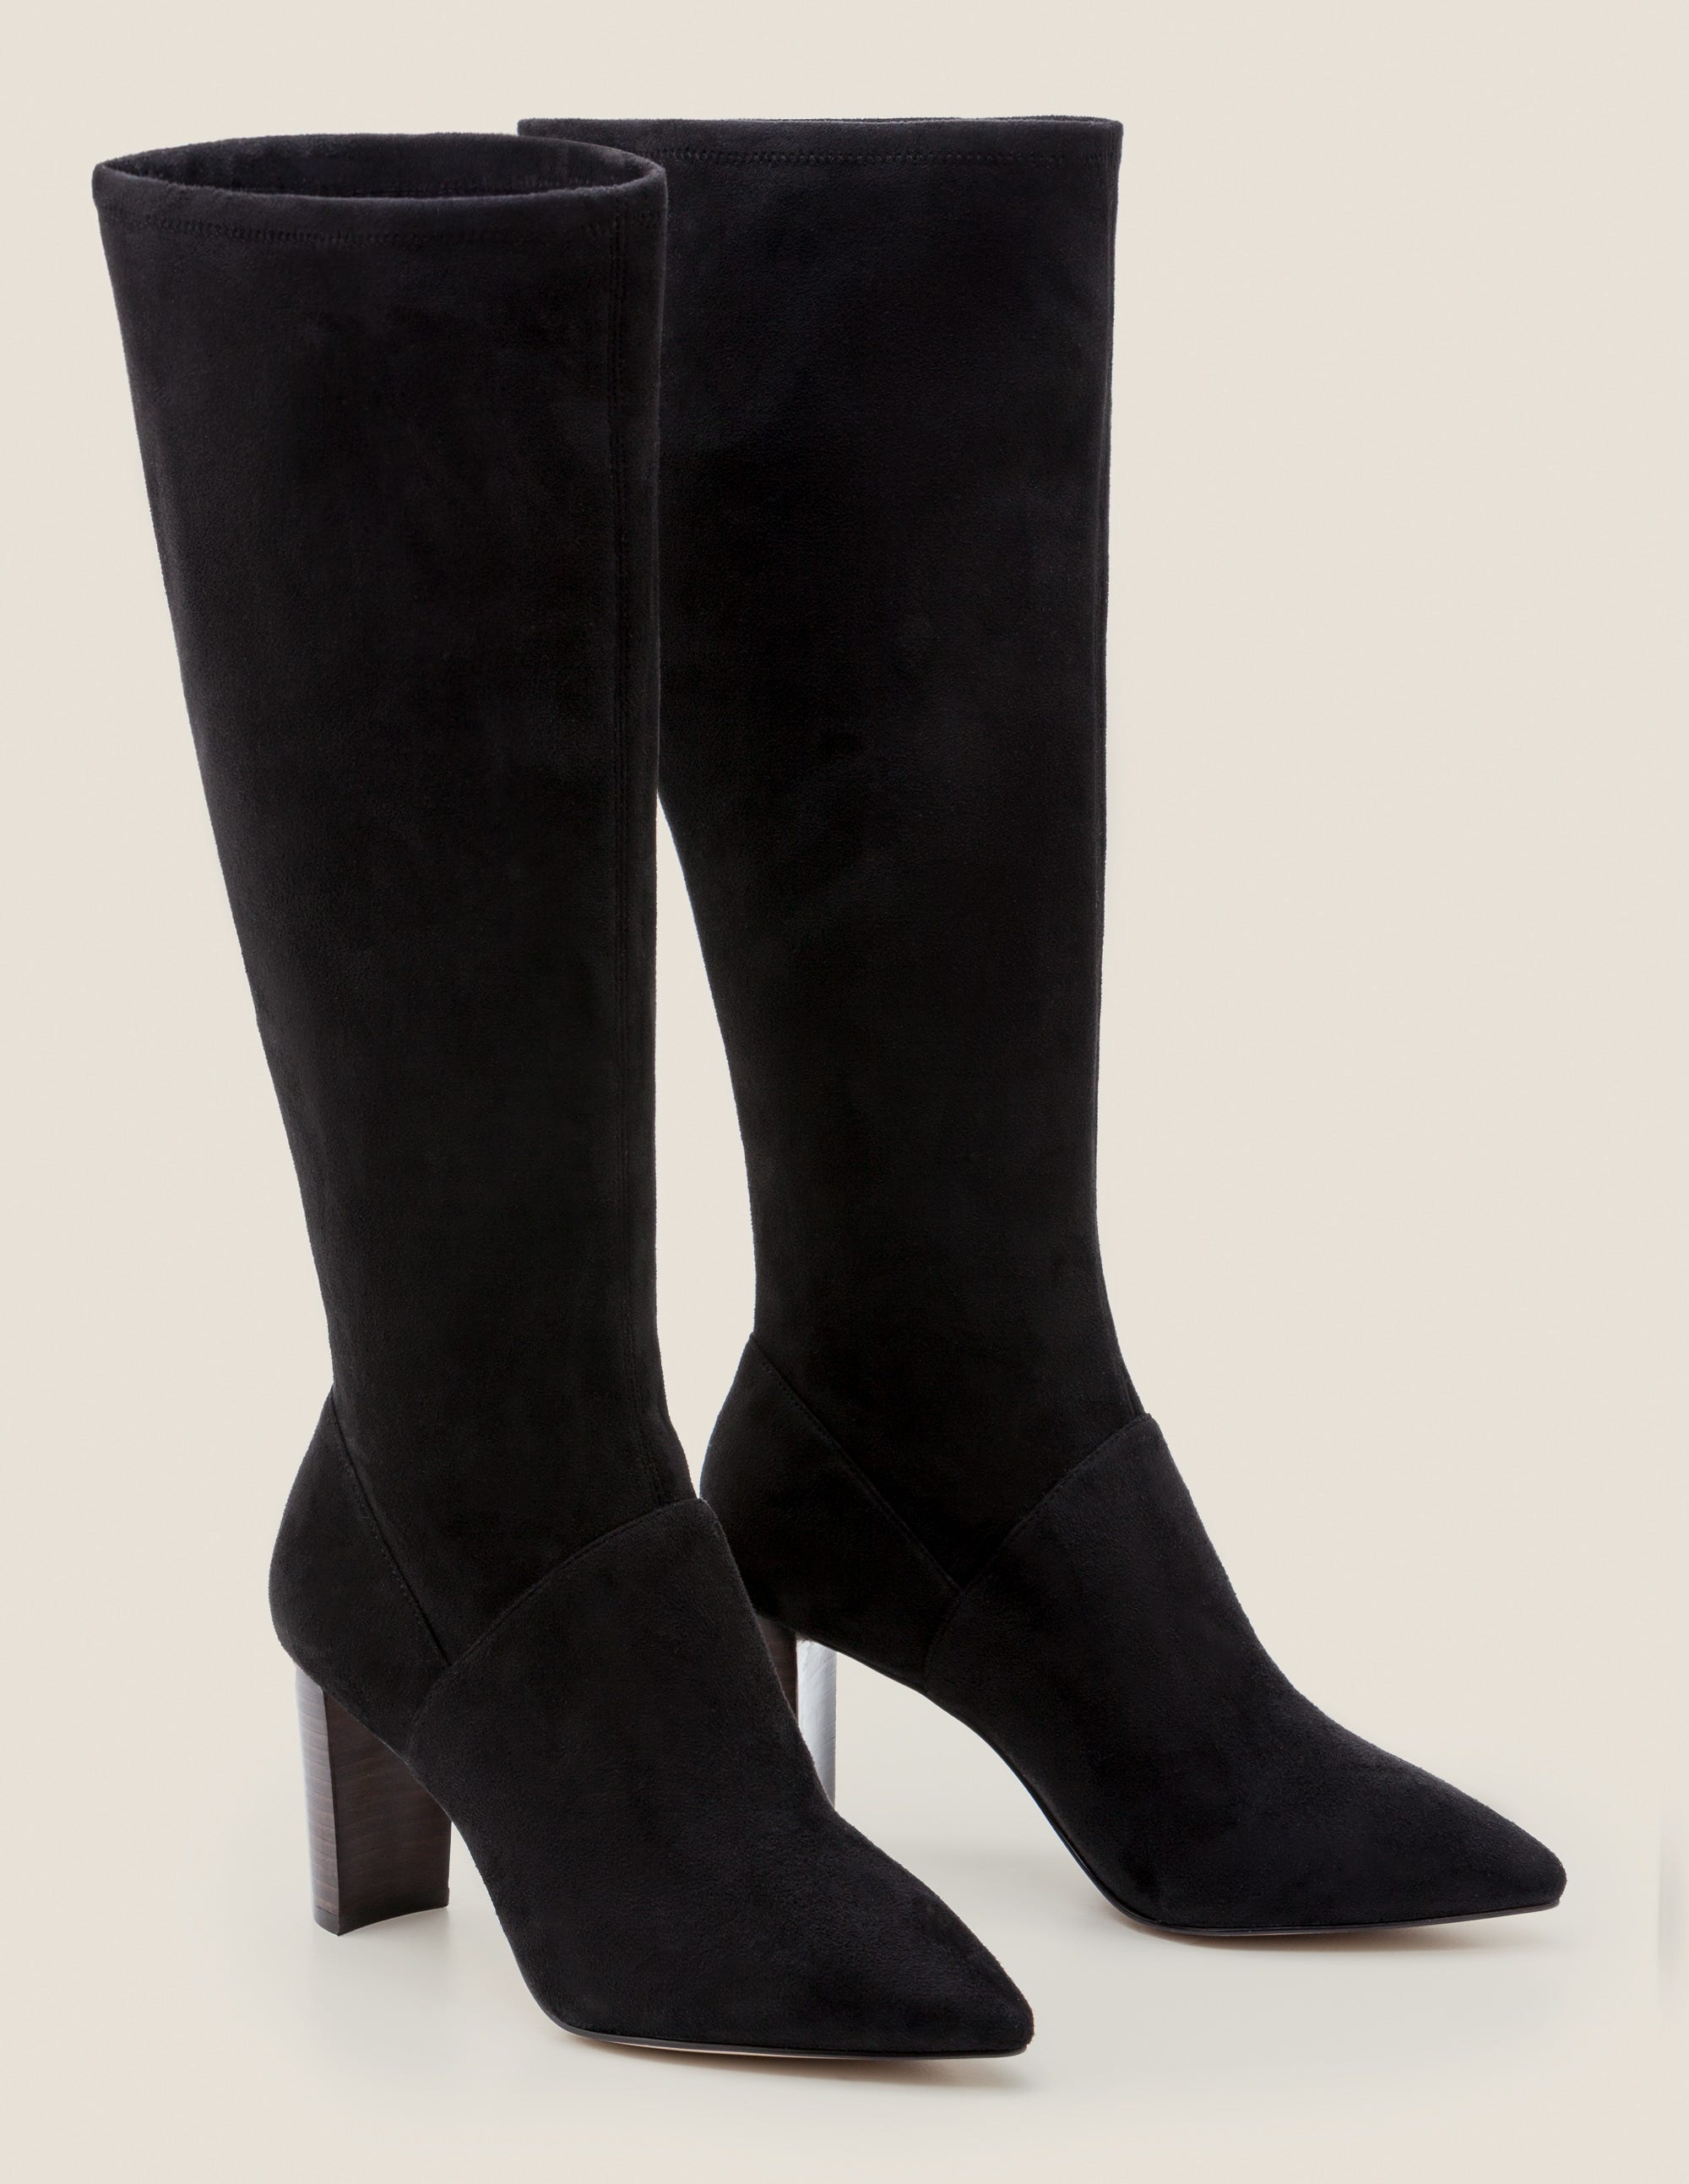 Pointed Toe Stretch Boots - Black